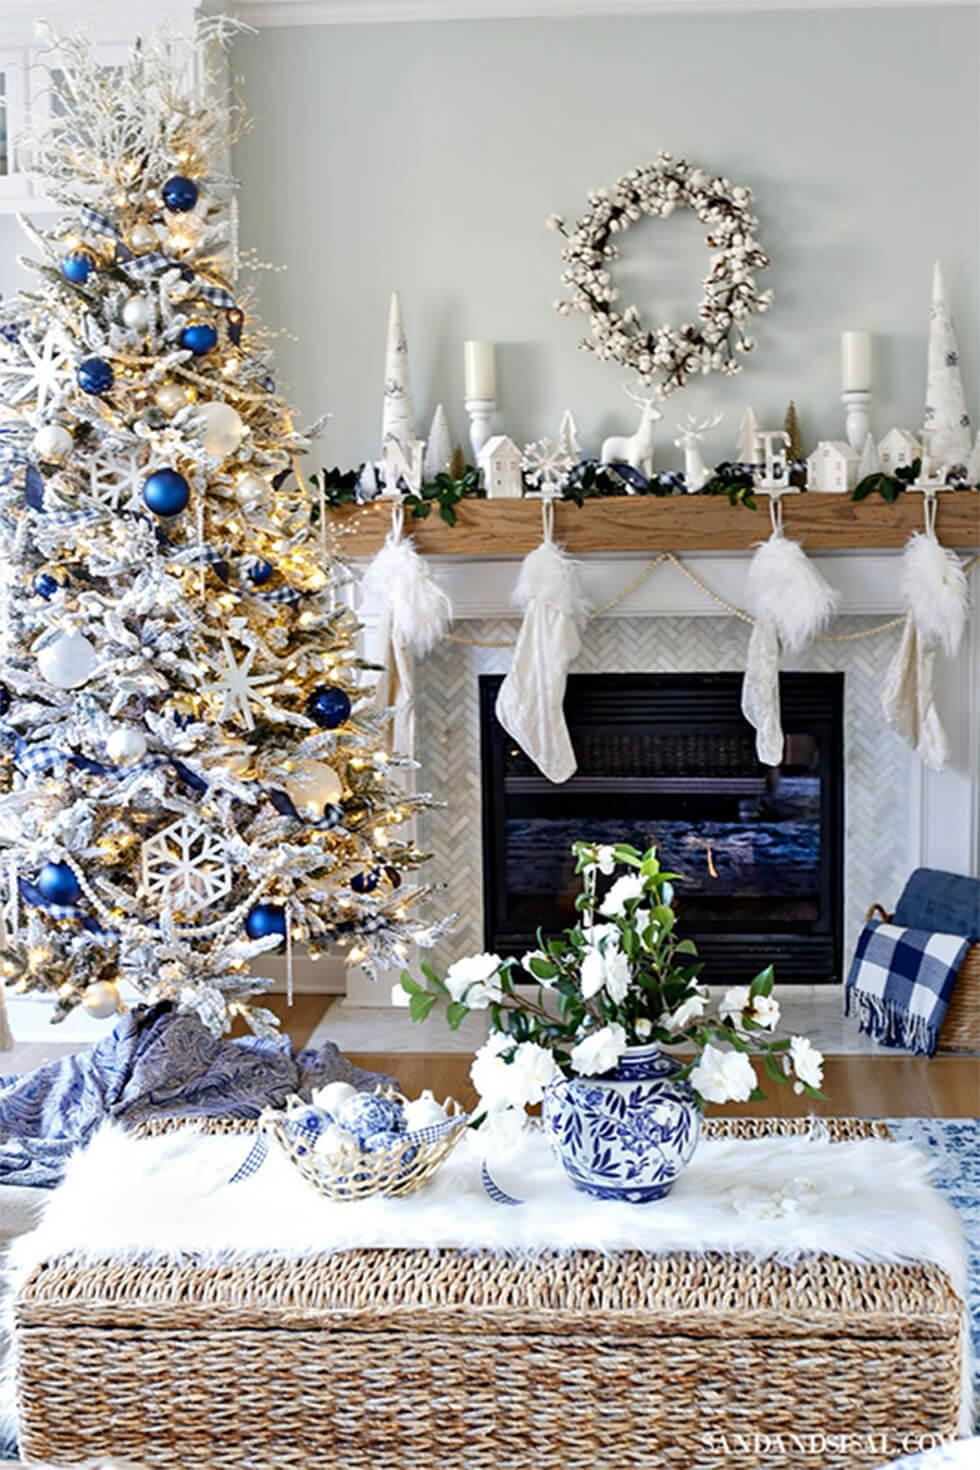 Living room with Christmas tree and stockings, tinsel and blue decor